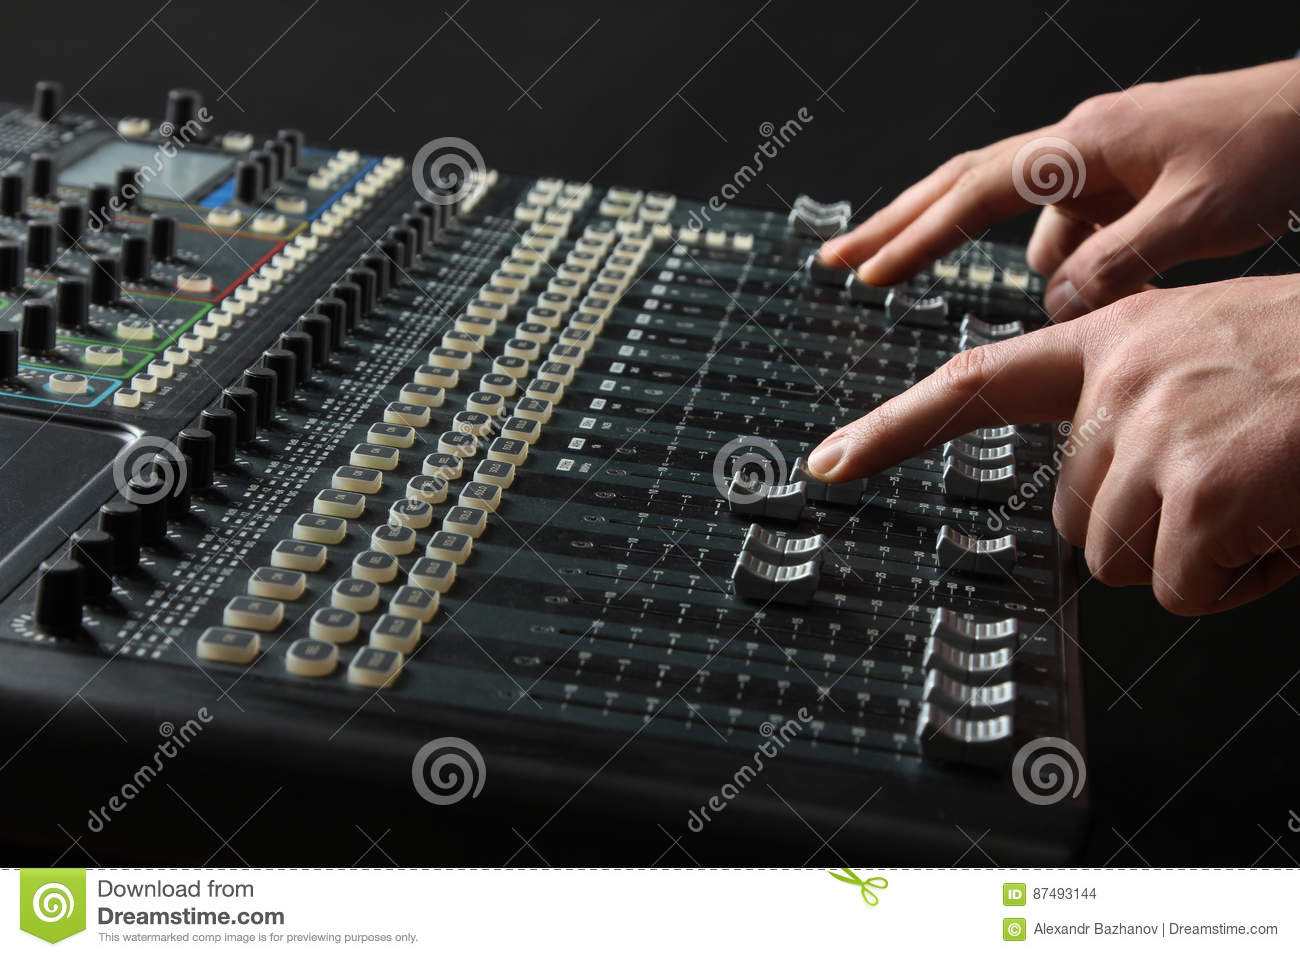 Free mixer devices download for sound.